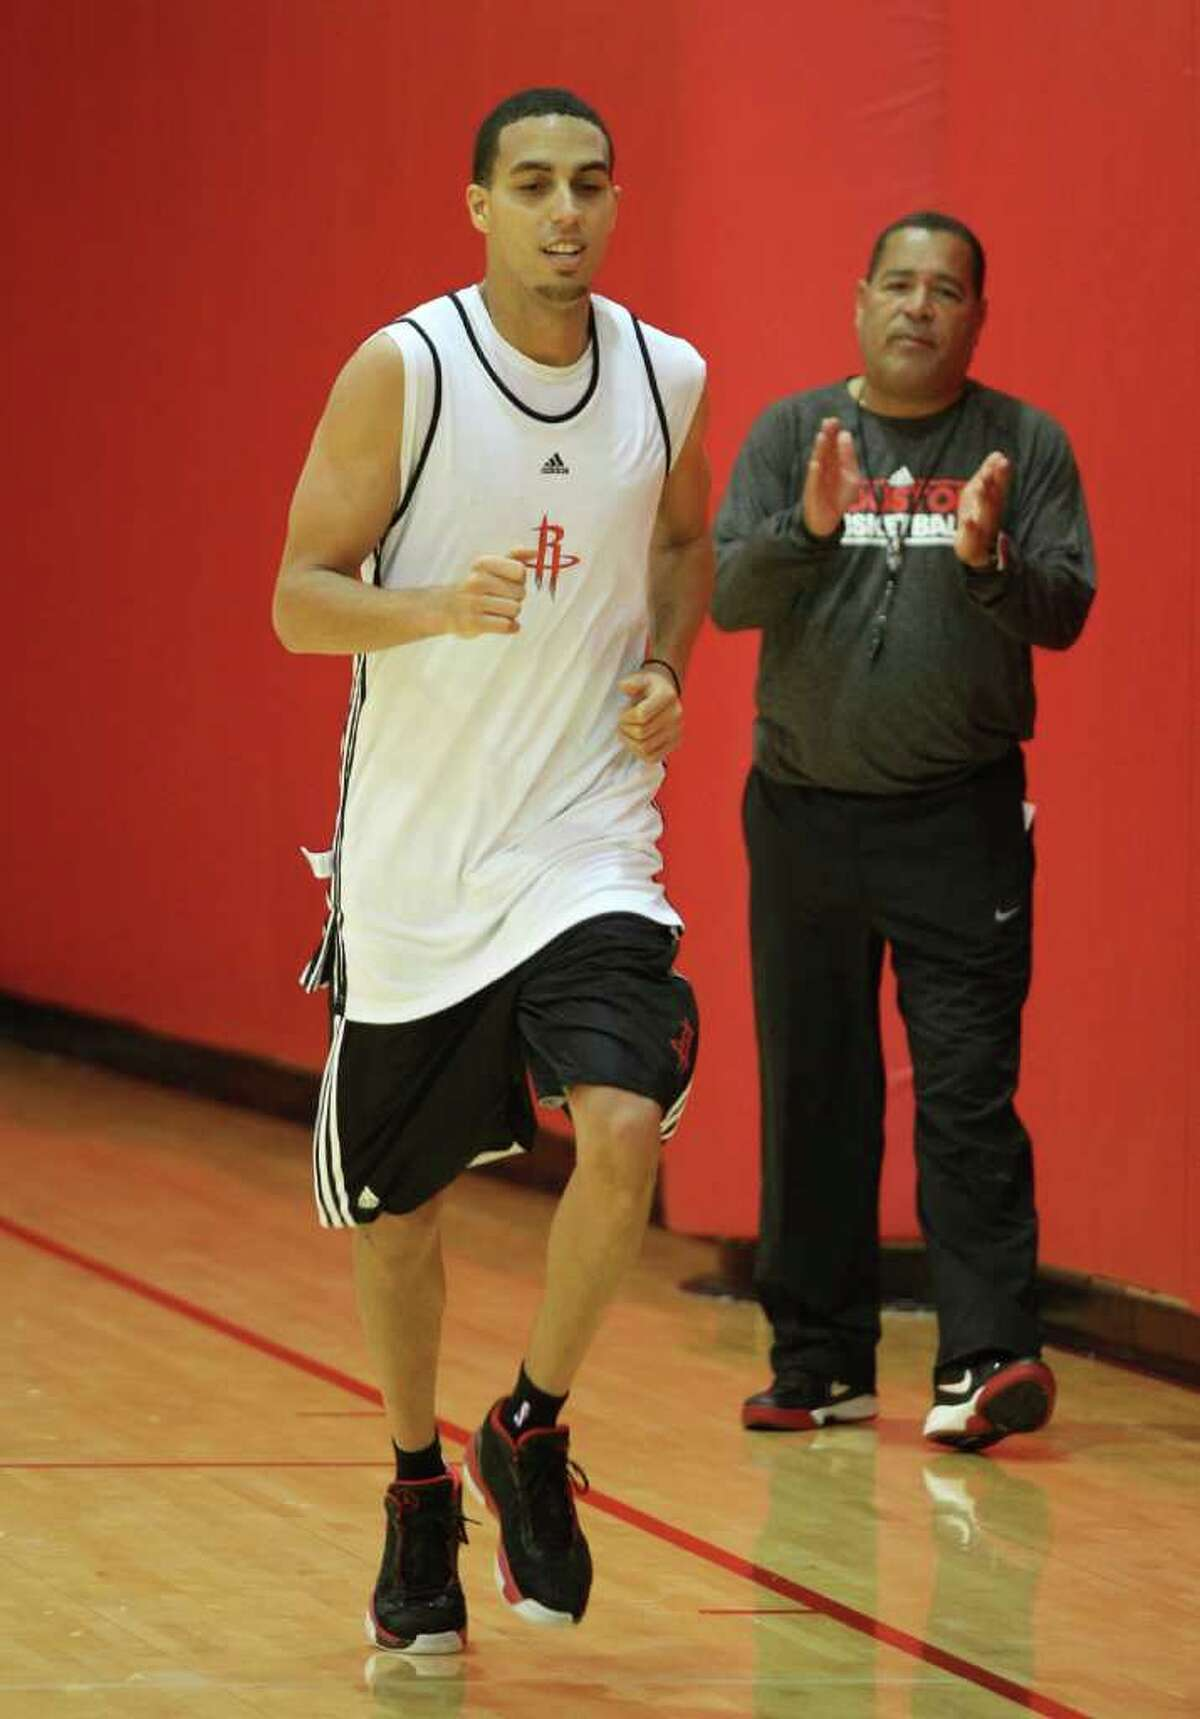 USH THE PACE: Assistant coach Kelvin Sampson encourages Kevin Martin at end-of-practice sprints. Martin, along with Luis Scola, returned to practice Sunday after sitting out Saturday's workouts while in trade limbo.